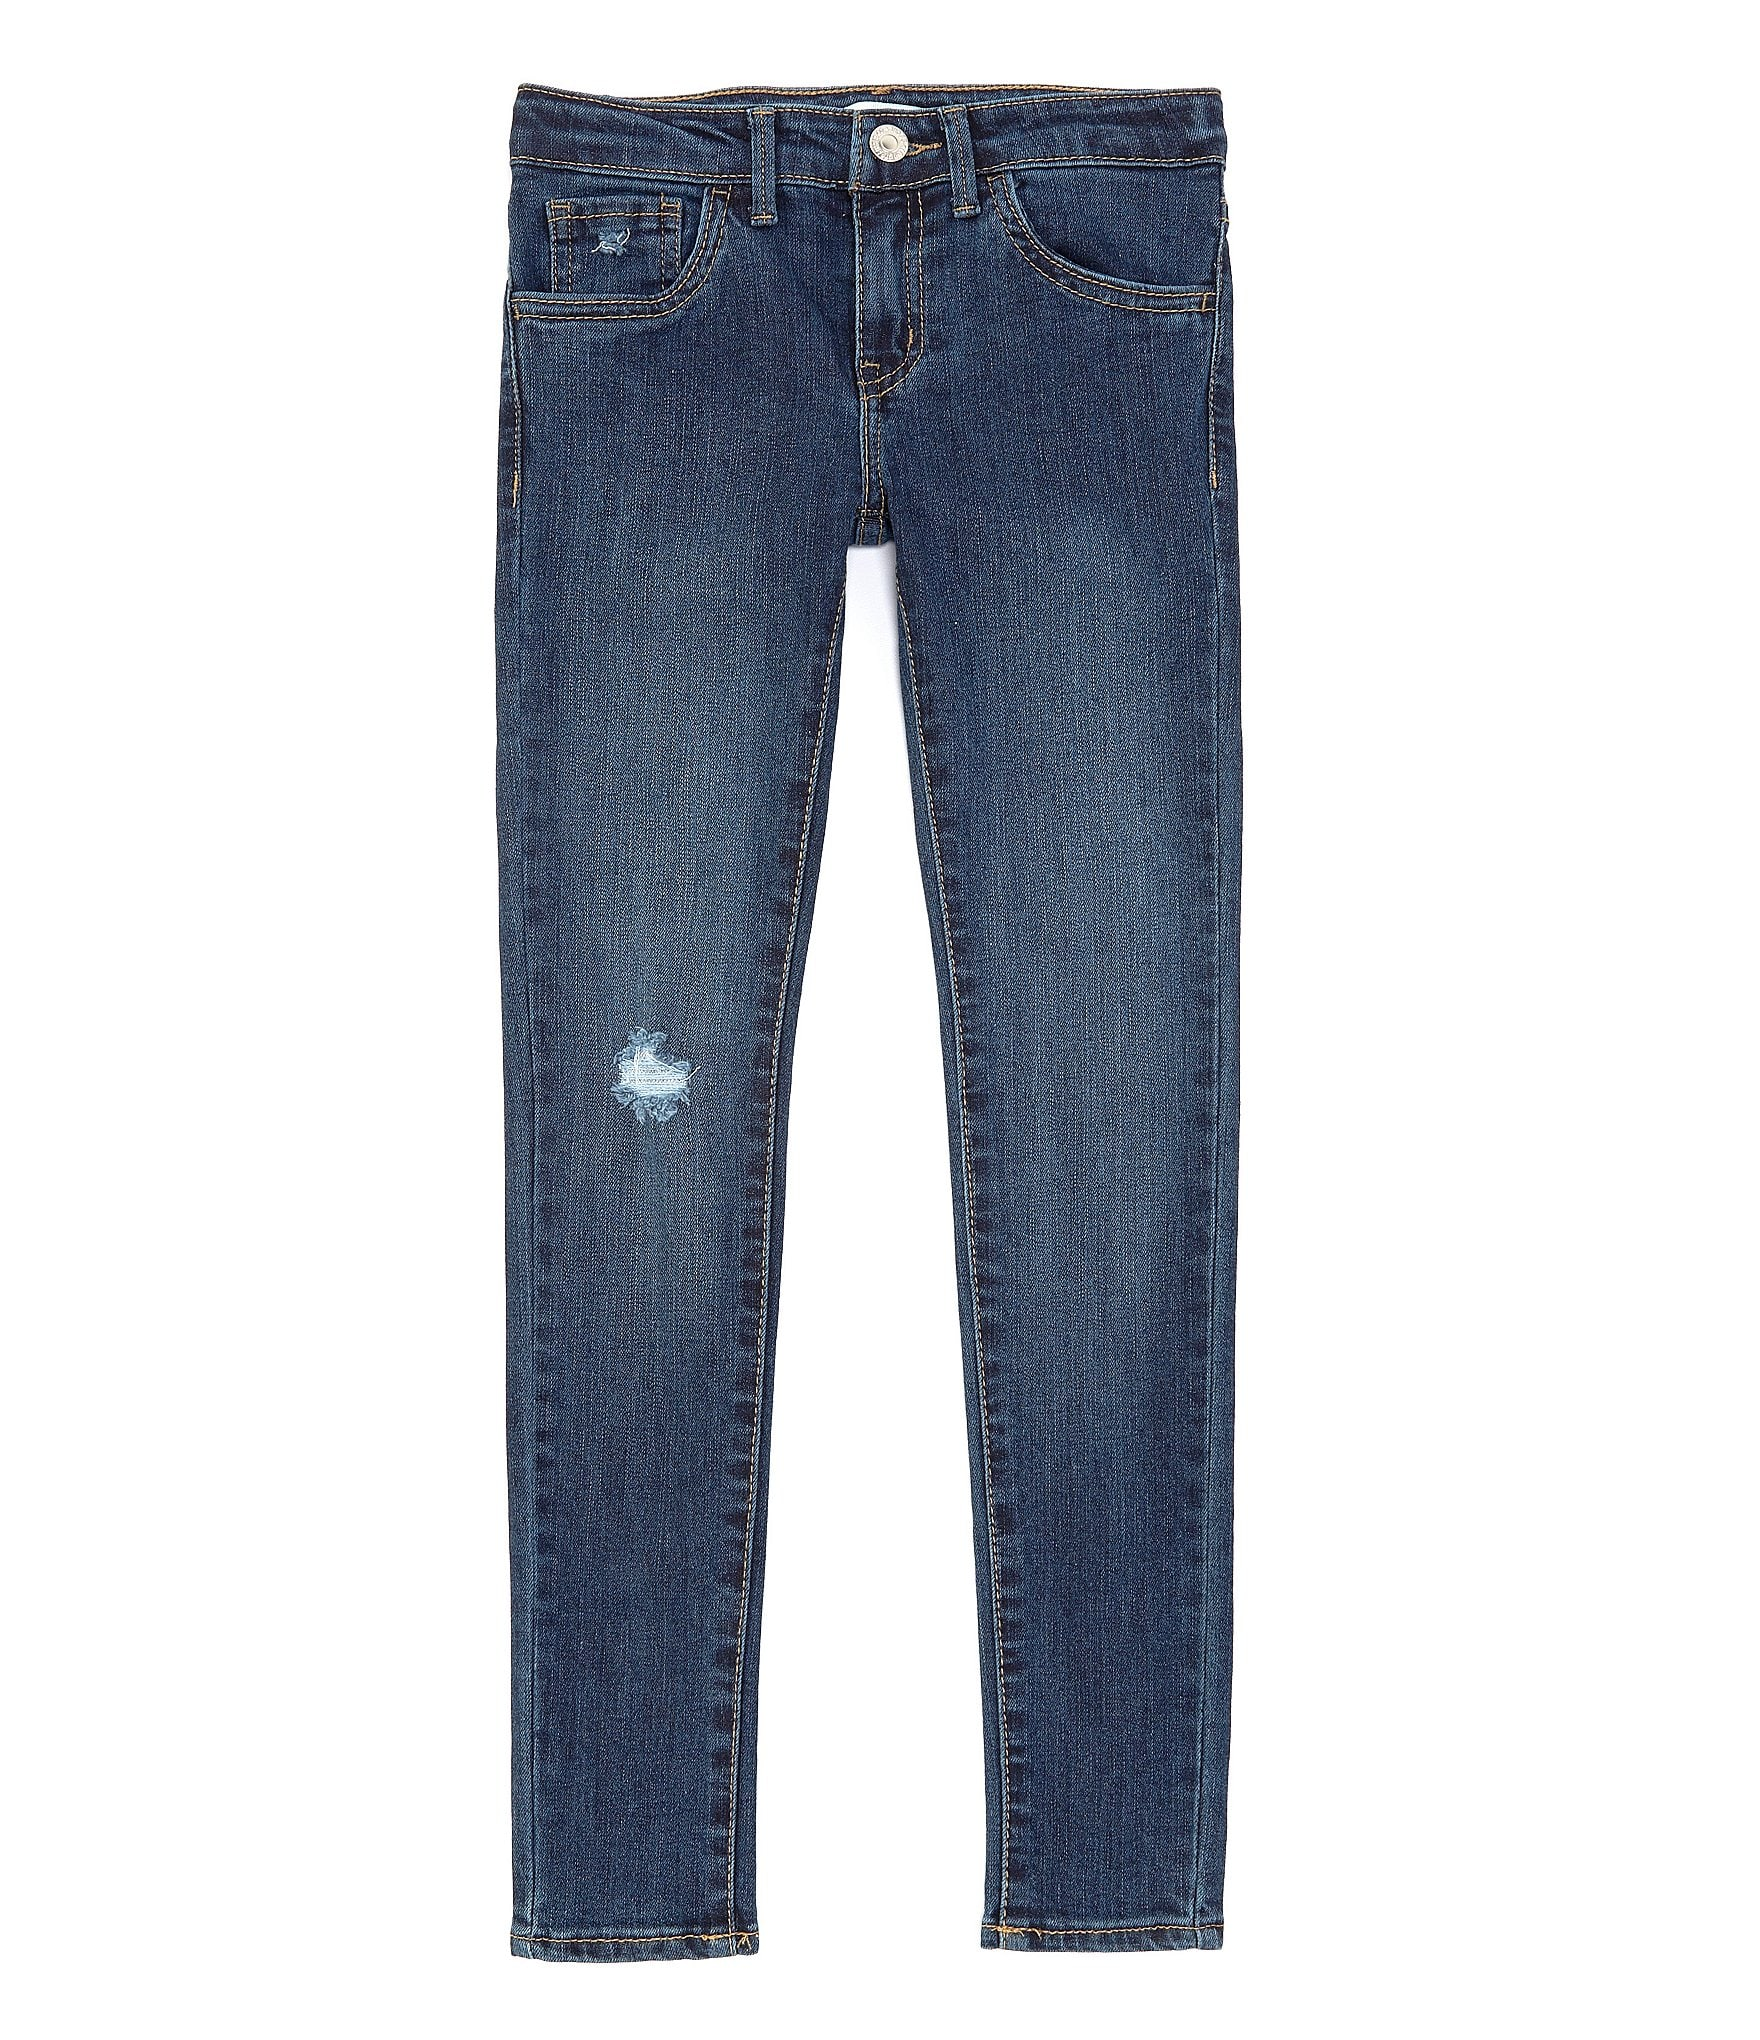 Levi's® Big Girls 7 16 Lana Denim Legging Jeans by Levi's